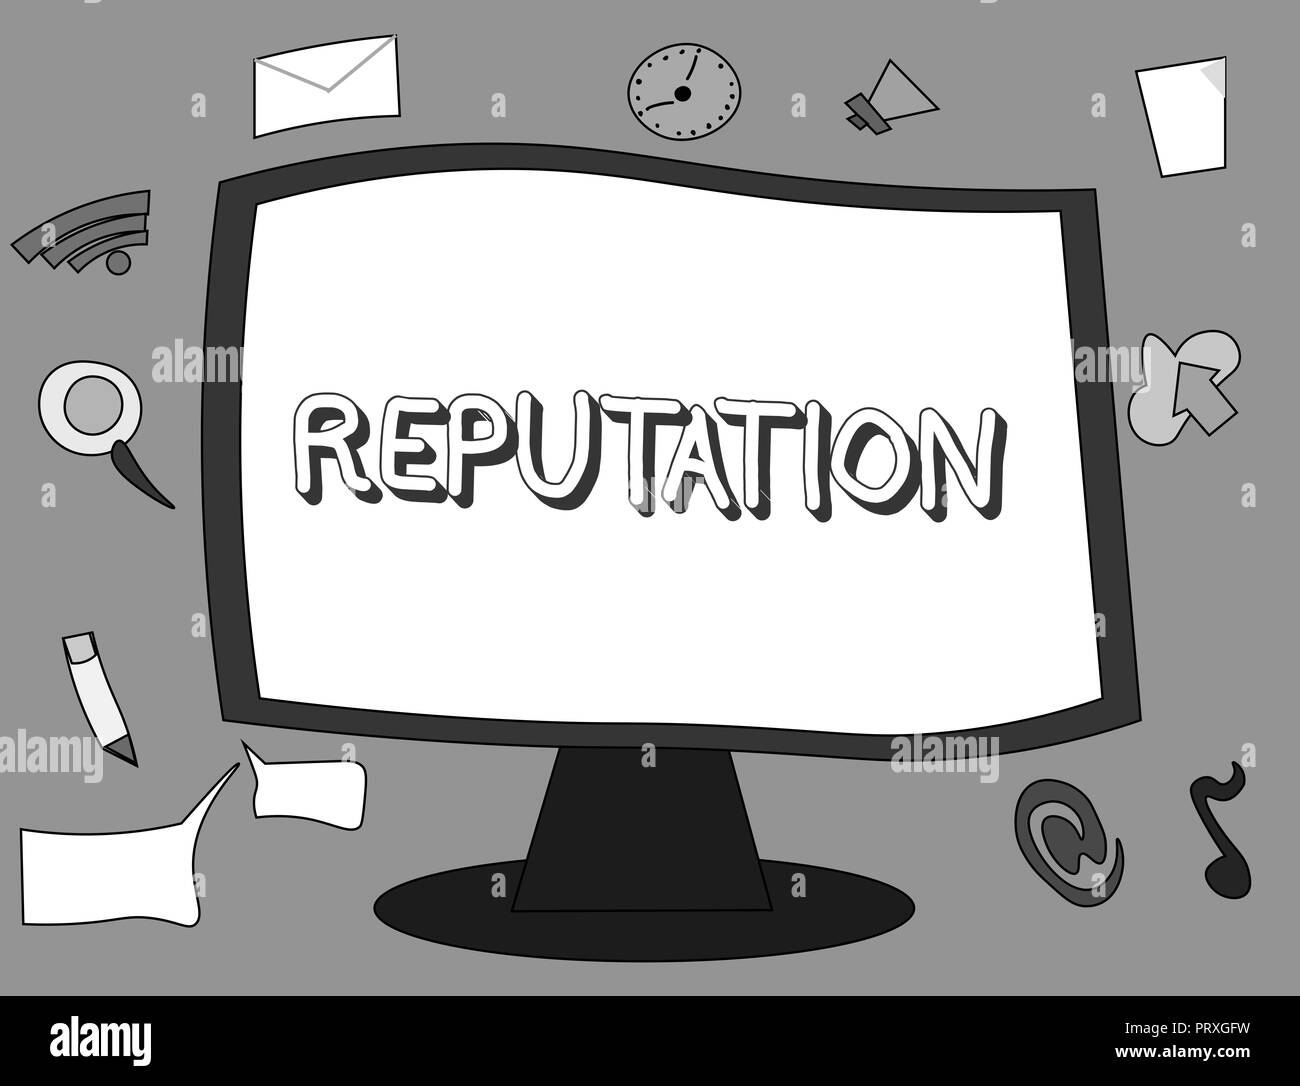 Word writing text Reputation. Business concept for Beliefs Opinions that are generally held about someone something. - Stock Image